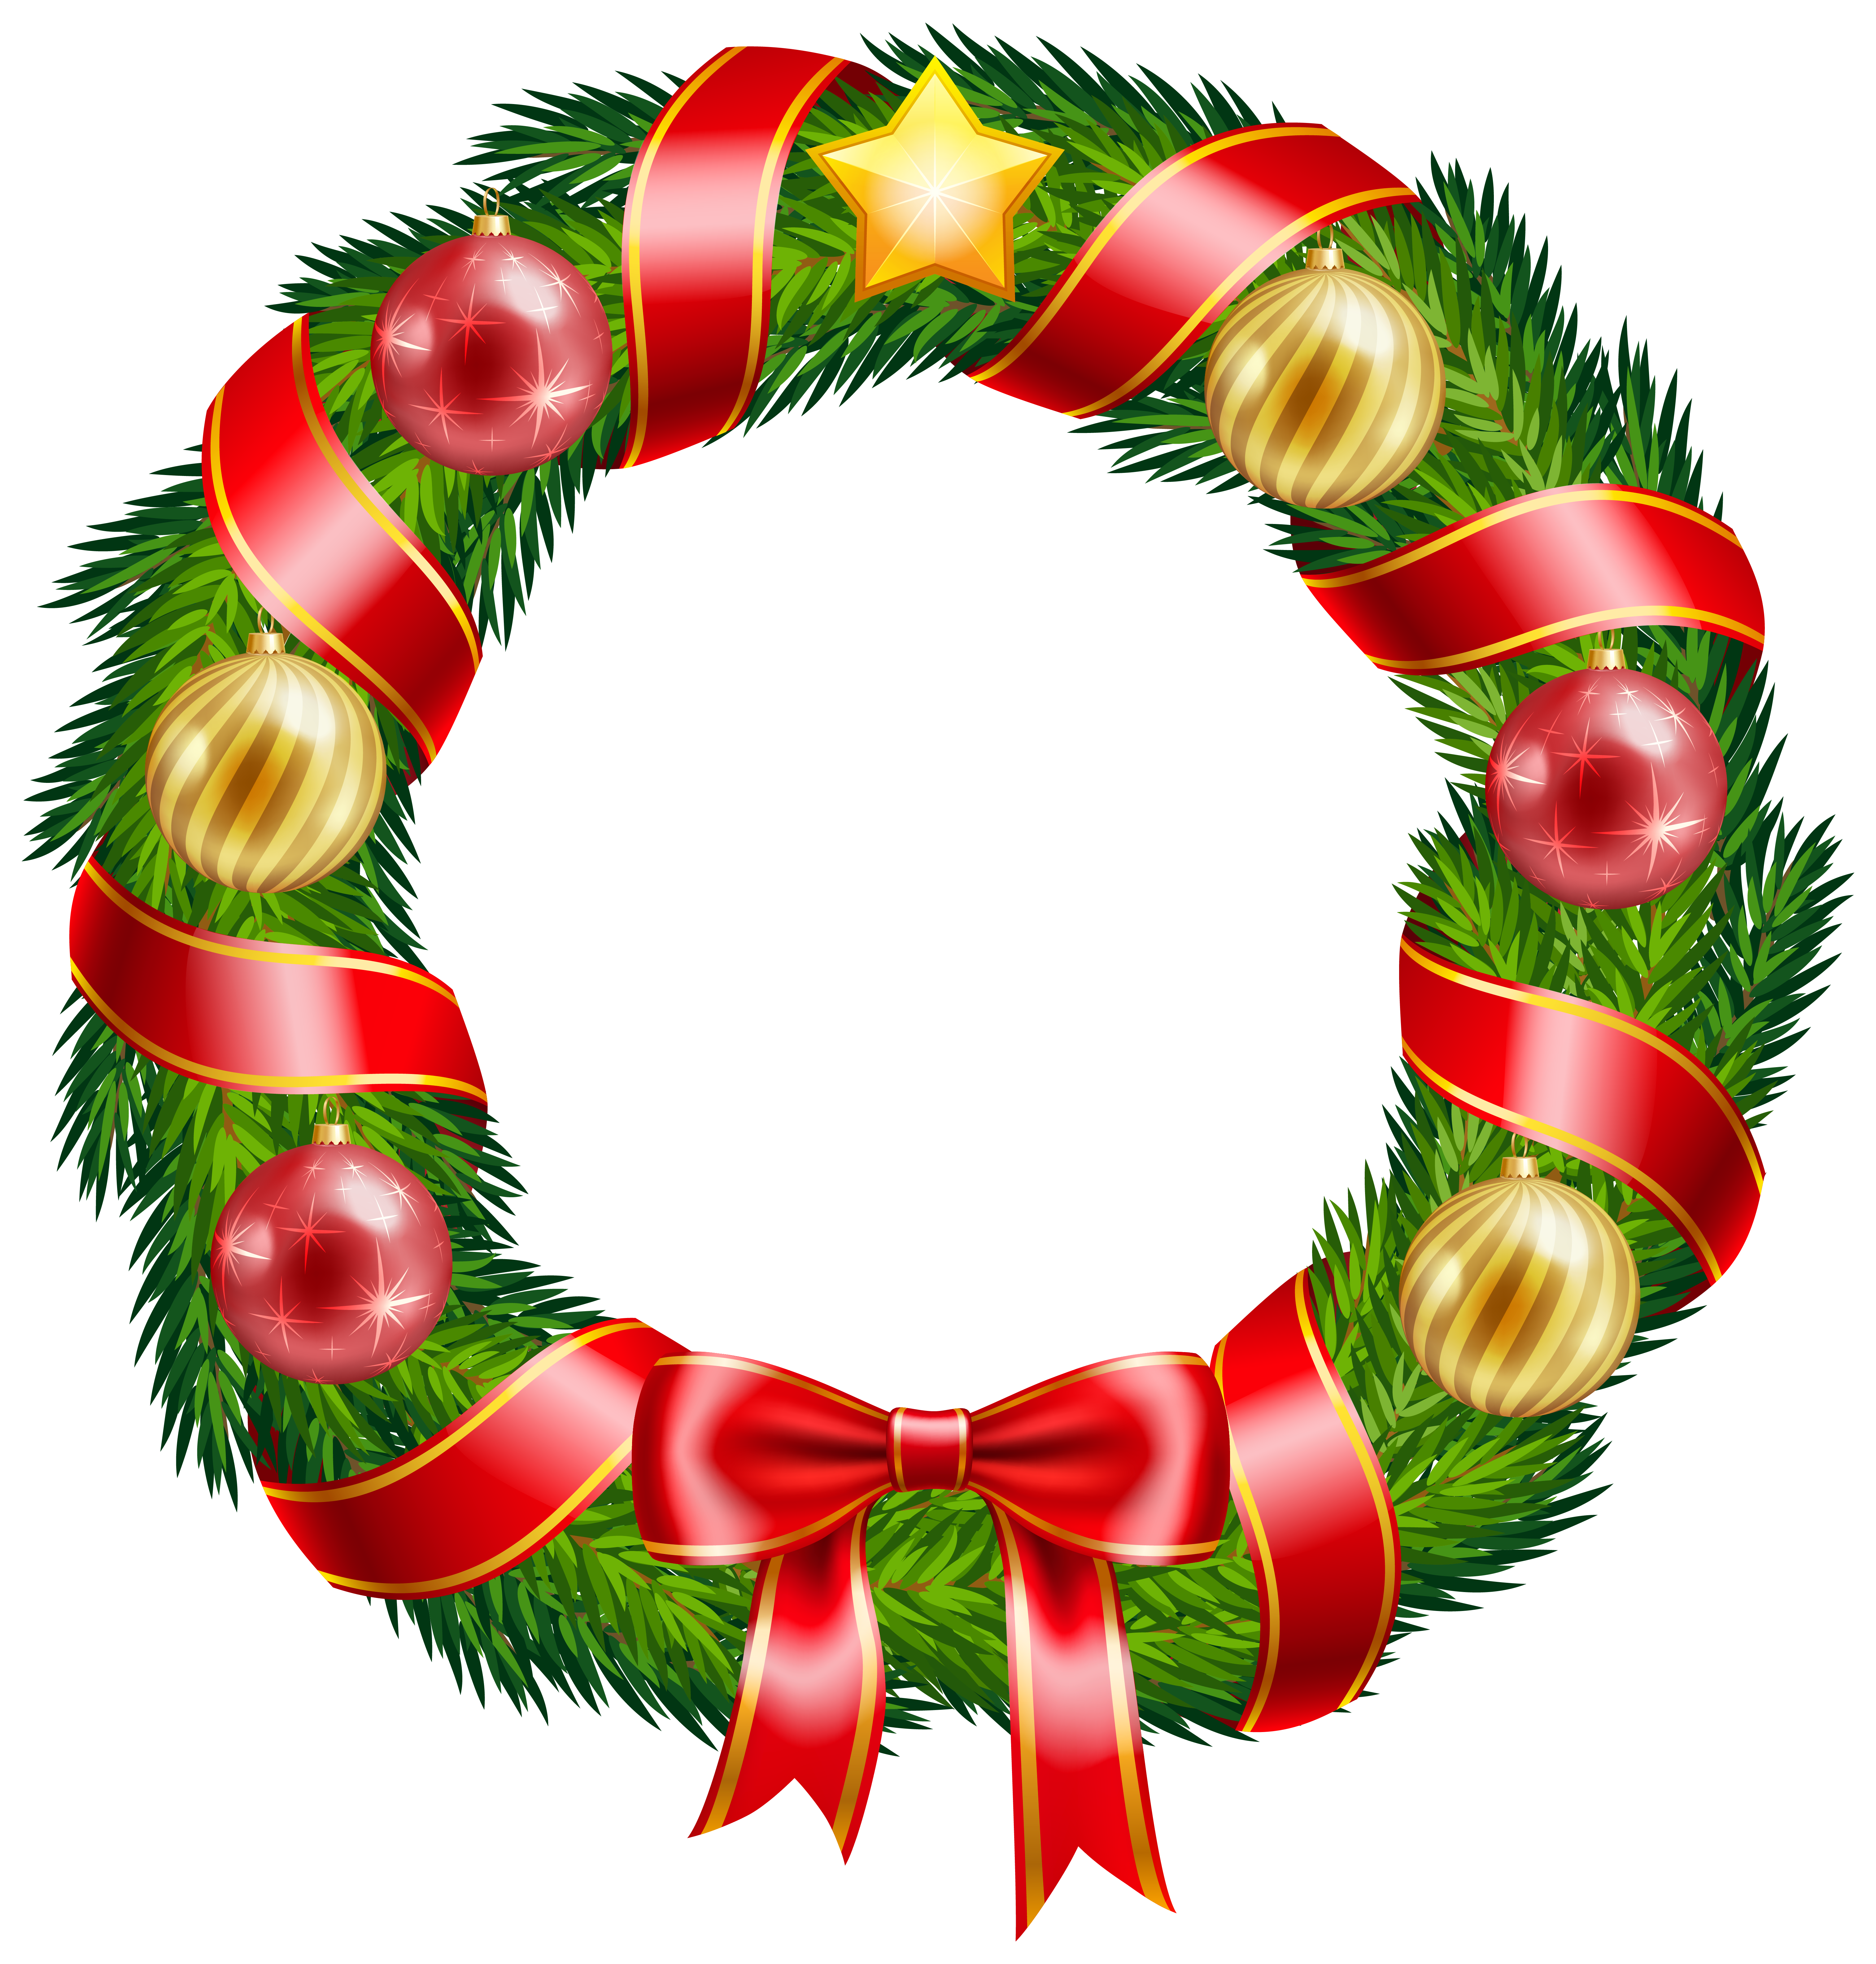 Christmas Wreaths Clipart - ClipArt Best